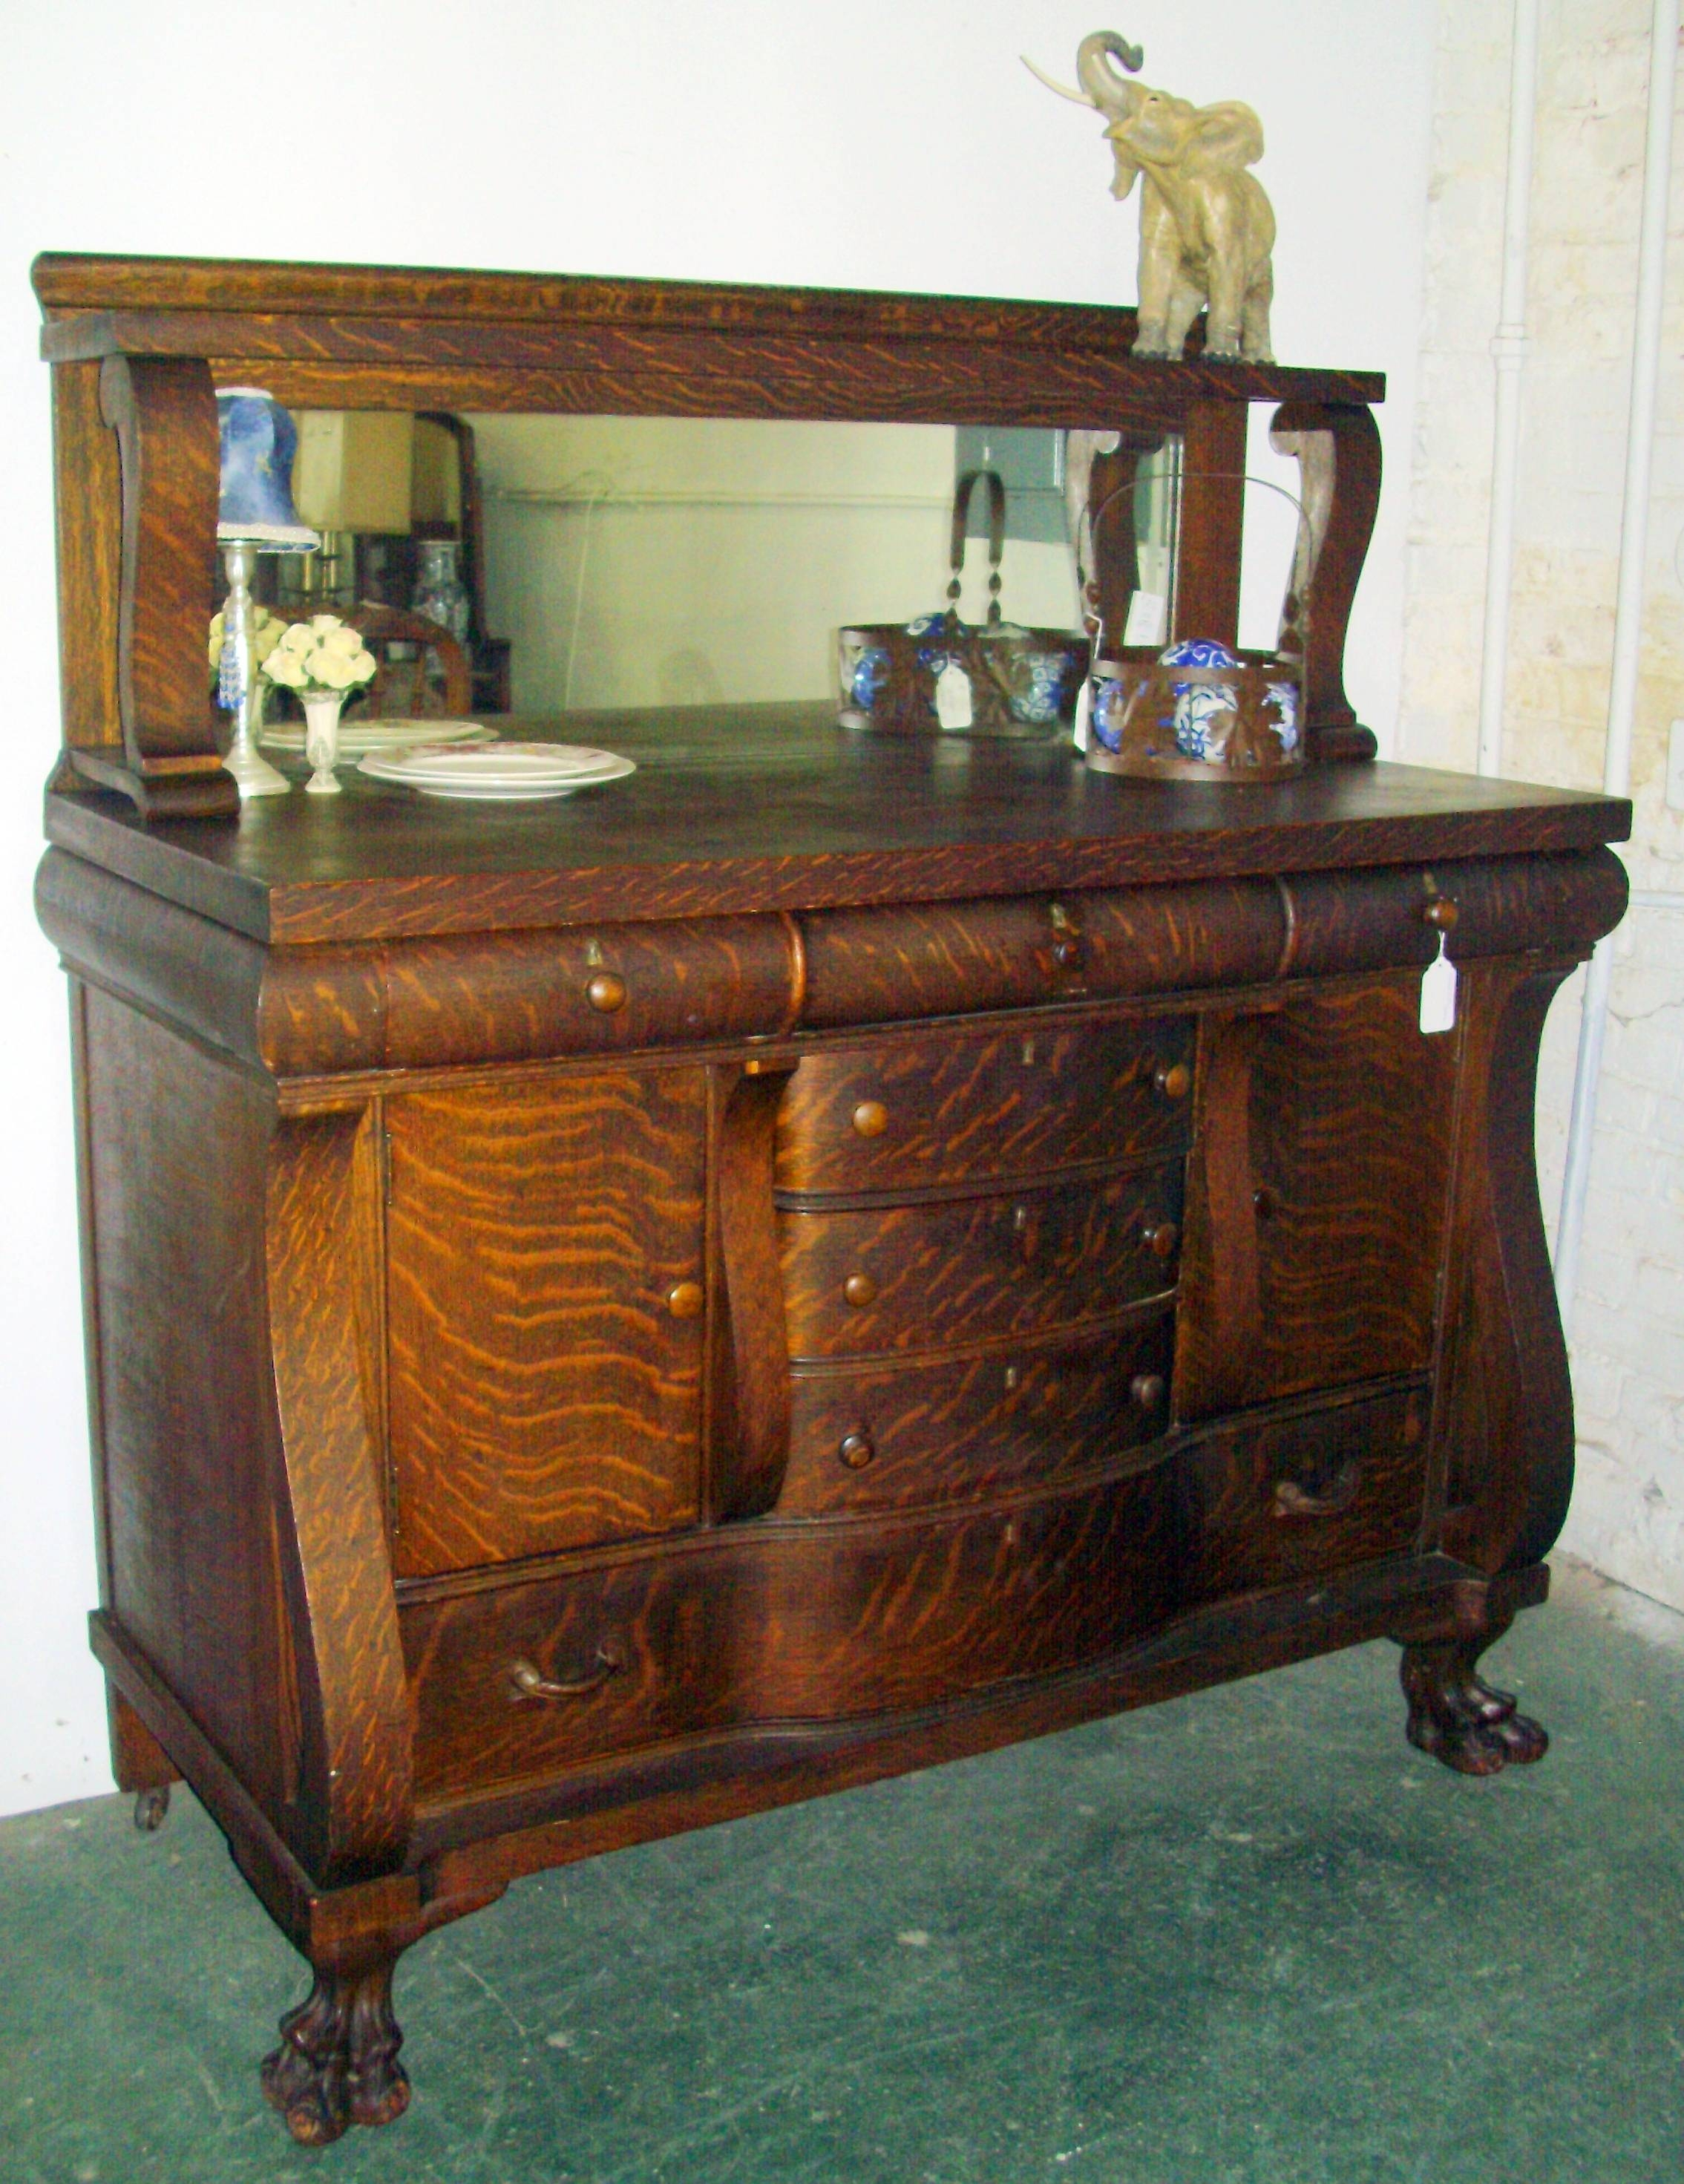 New Antique Sideboard With Mirror   Bjdgjy In Antique Sideboards With Mirror (Photo 4 of 15)